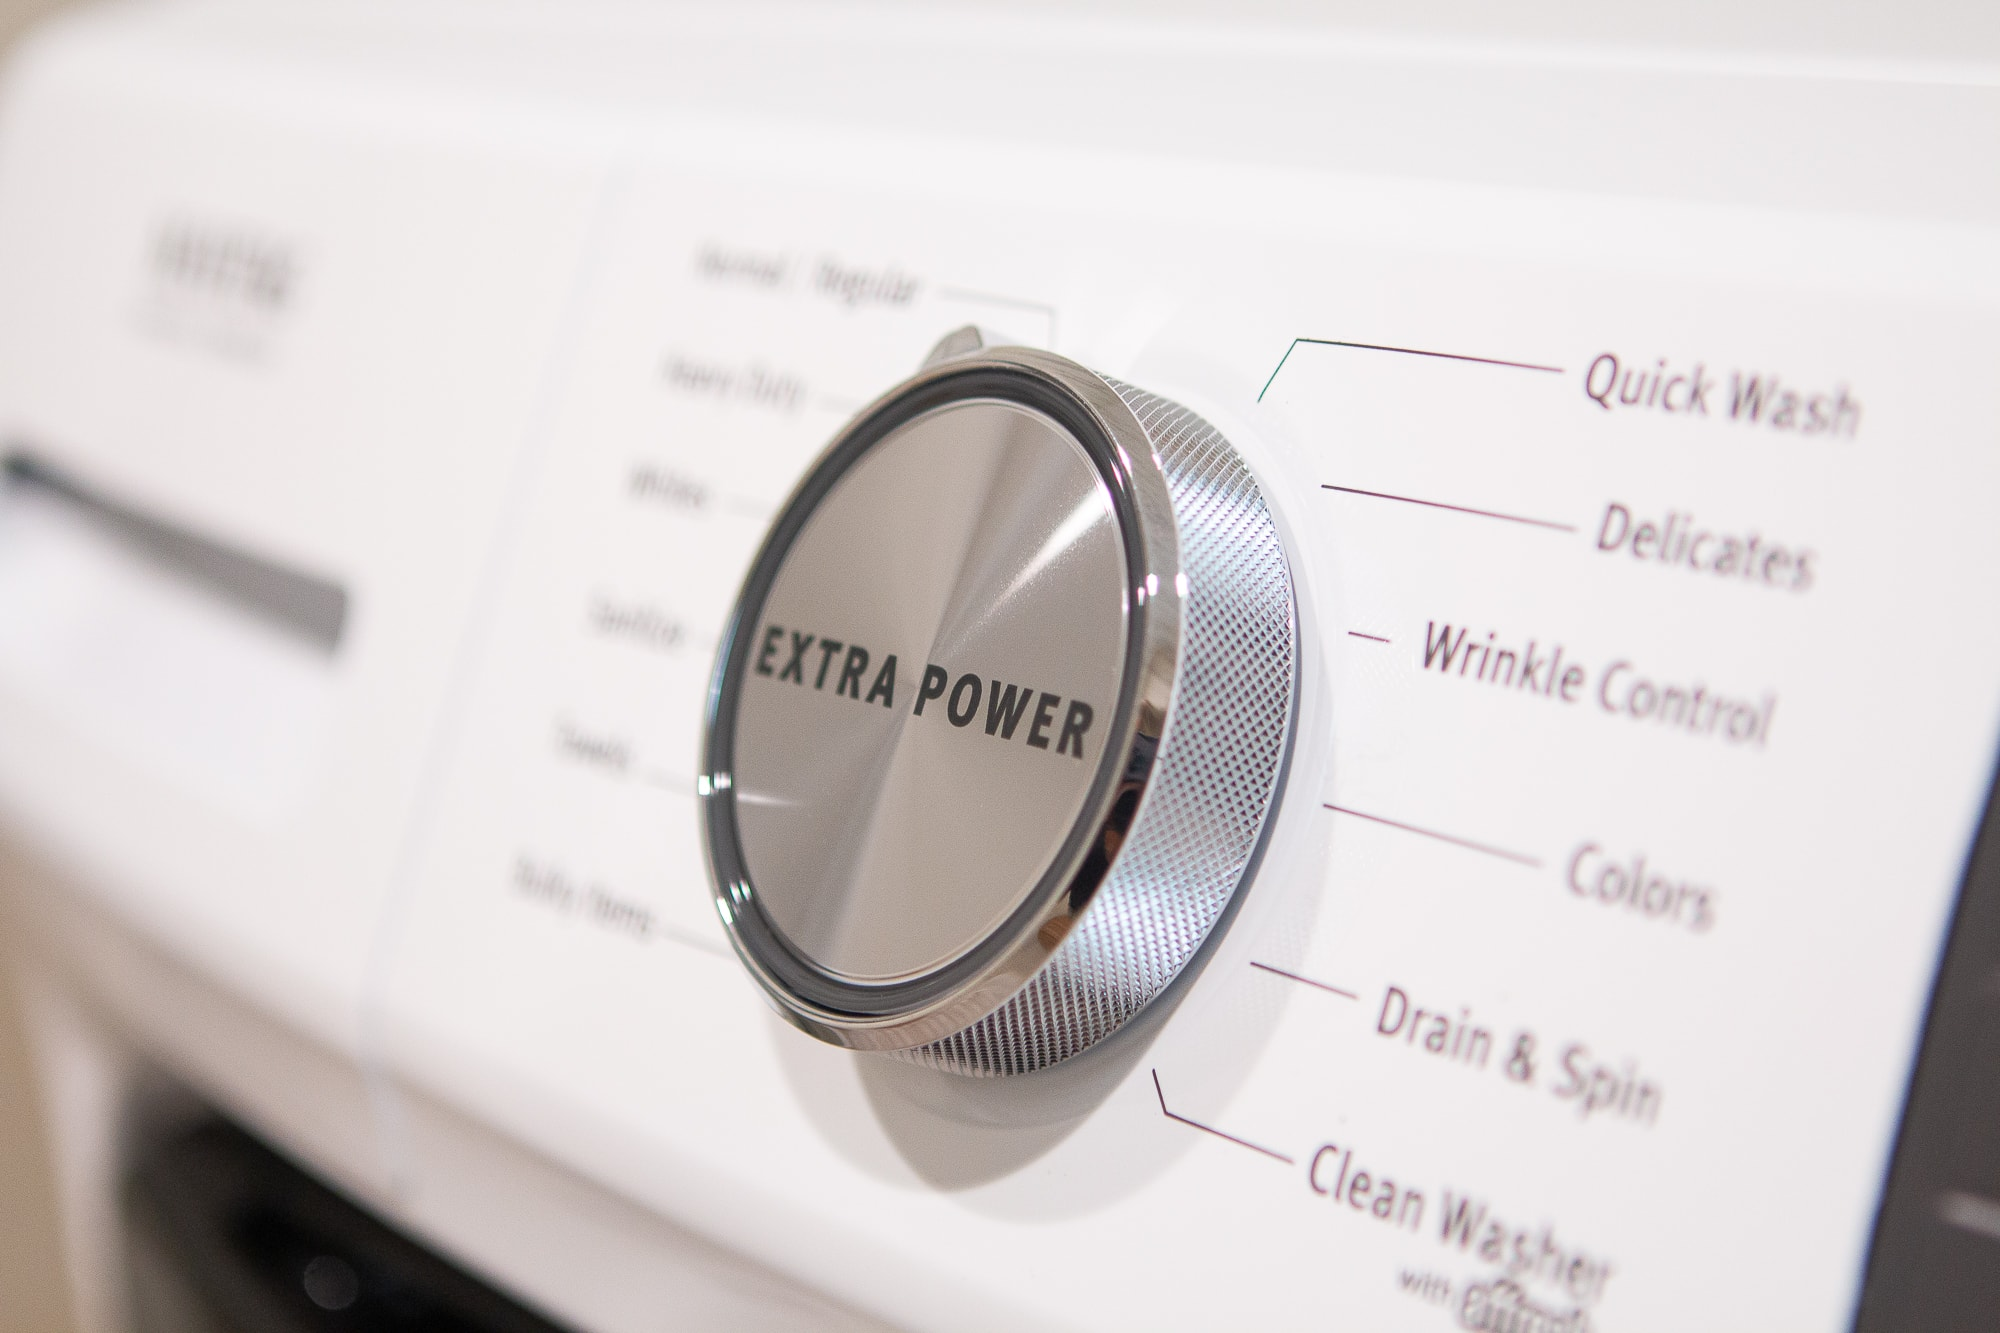 Extra power button on Maytag washer